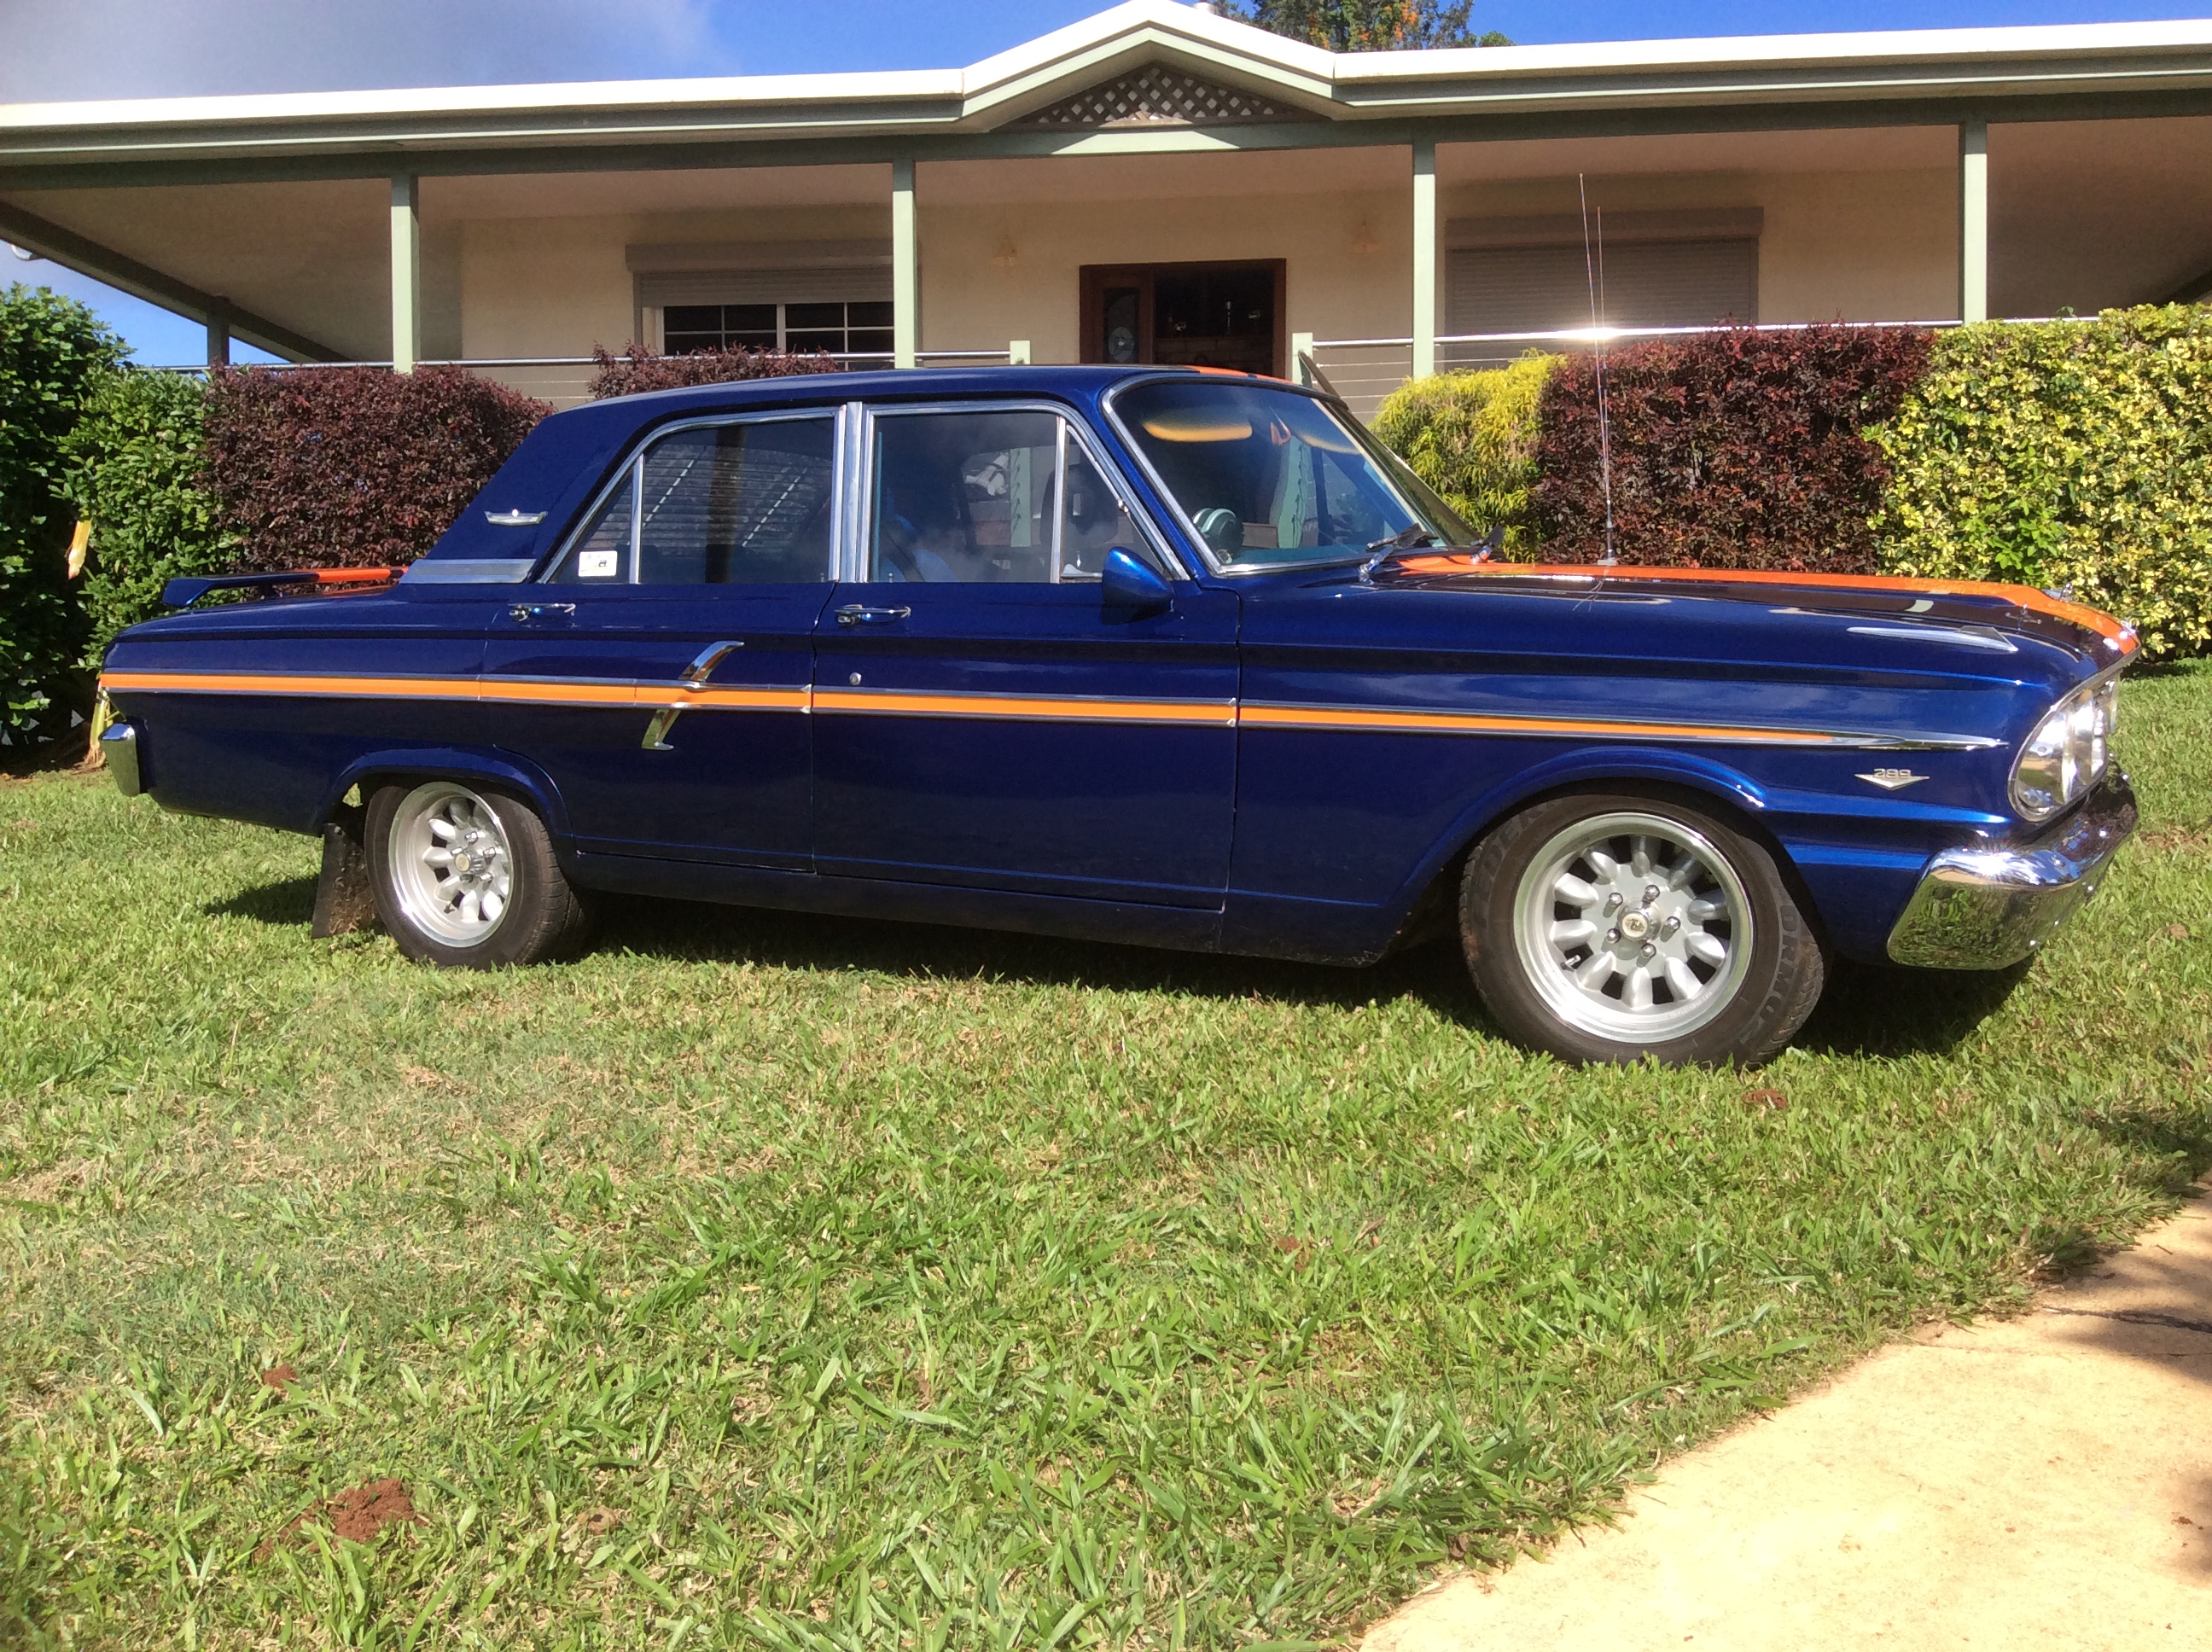 Ford Fairlane Cars for sale in Australia - JUST CARS